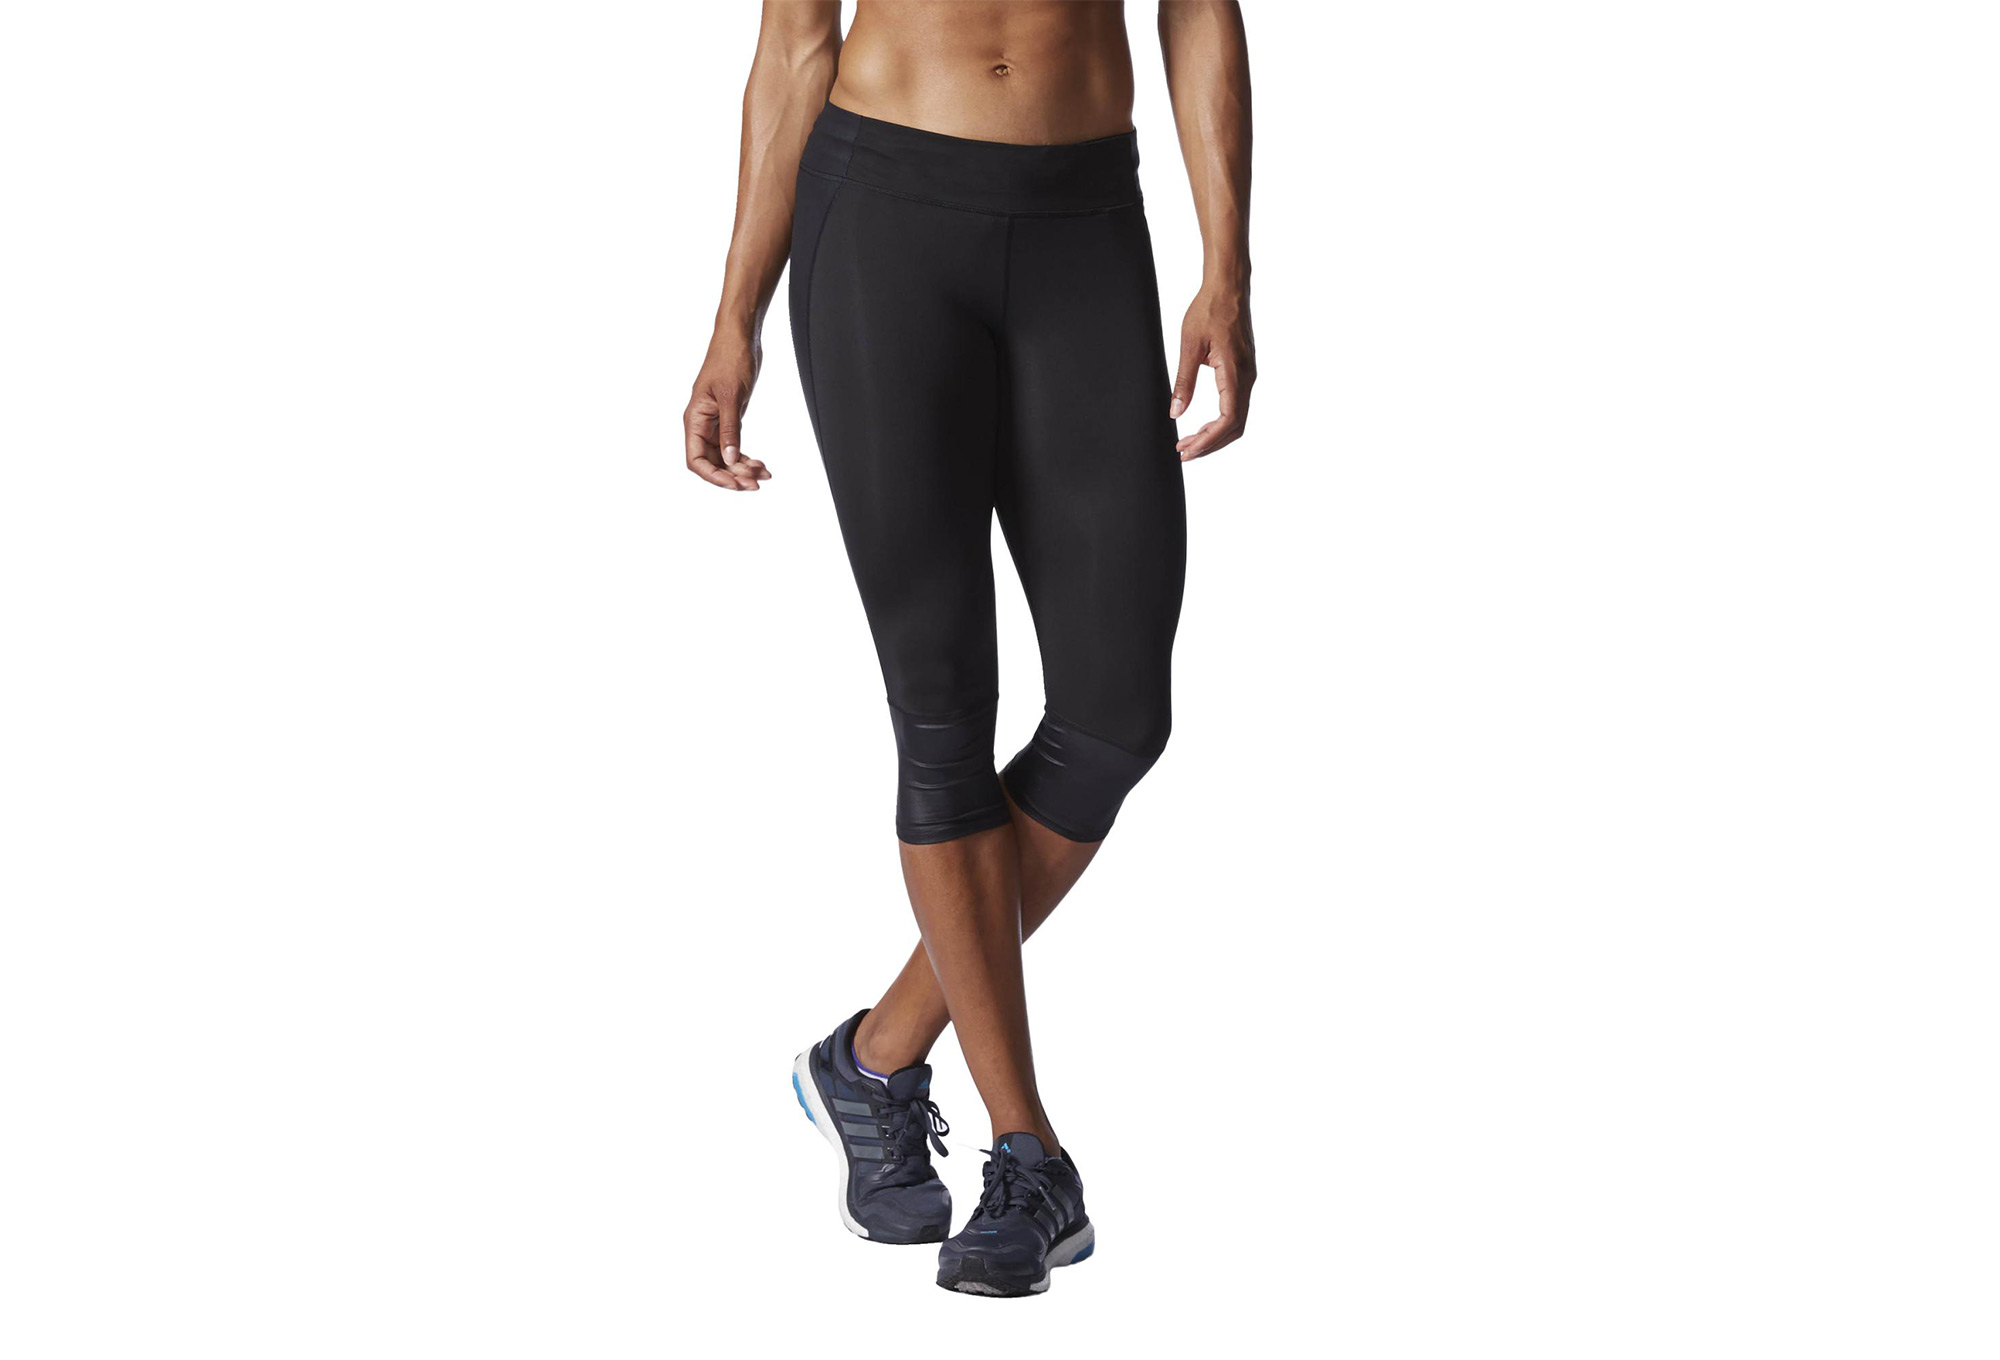 e99196bcaf6 adidas SUPERNOVA 3/4 Tights Black | Alltricks.com